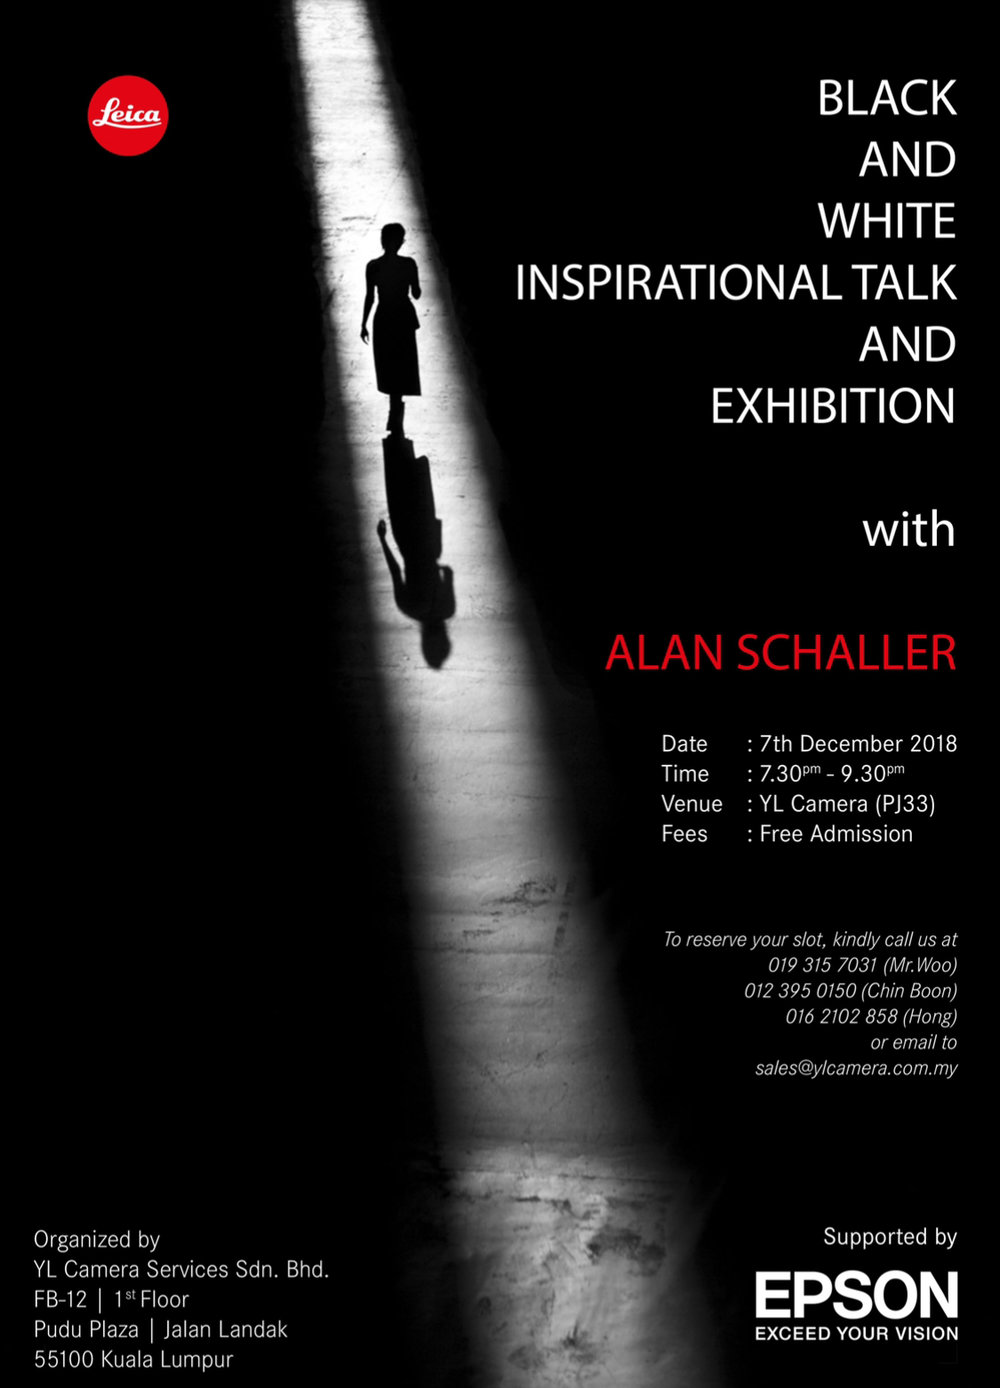 Flyer for the Kuala Lumpur Exhibition.